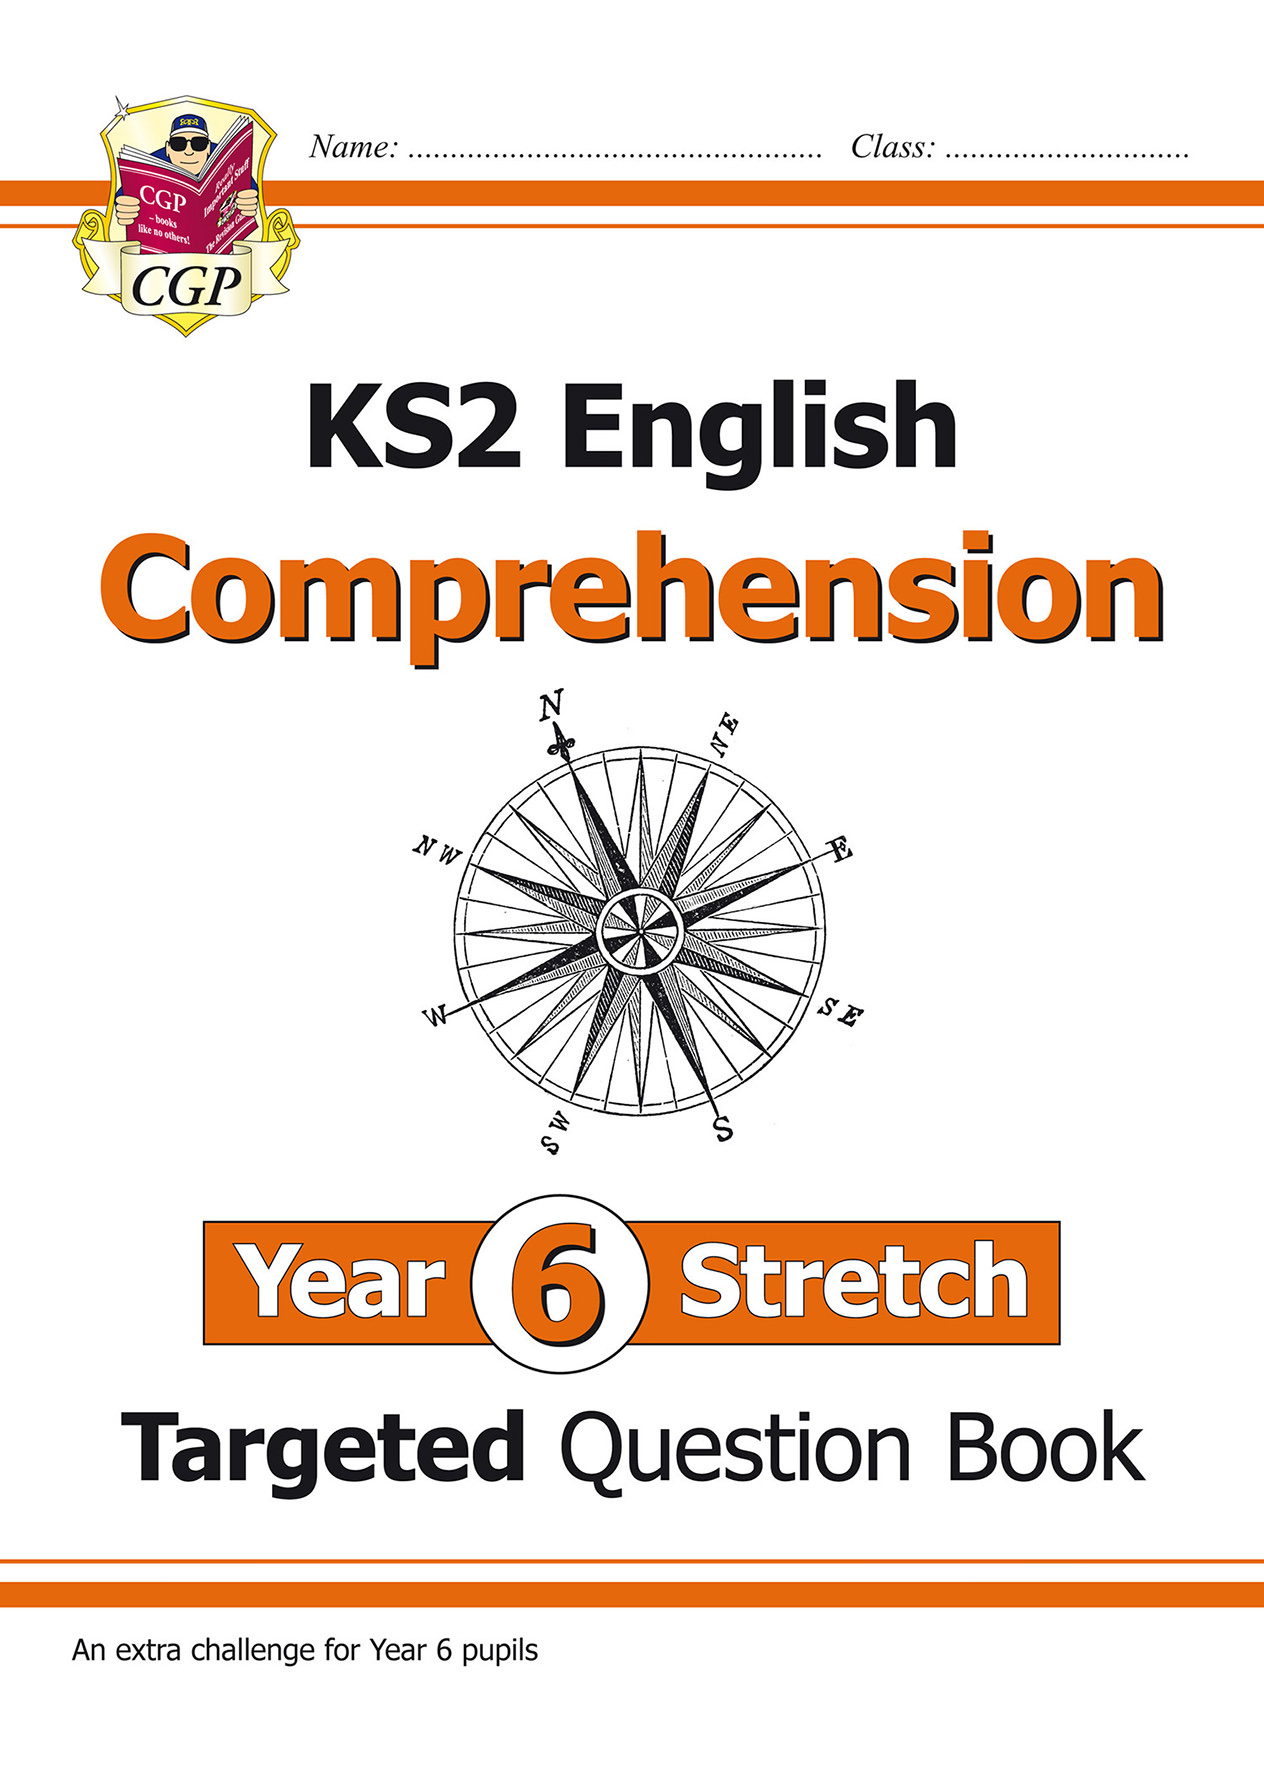 E6HCW21 - KS2 English Targeted Question Book: Challenging Comprehension - Year 6 Stretch (with Answe